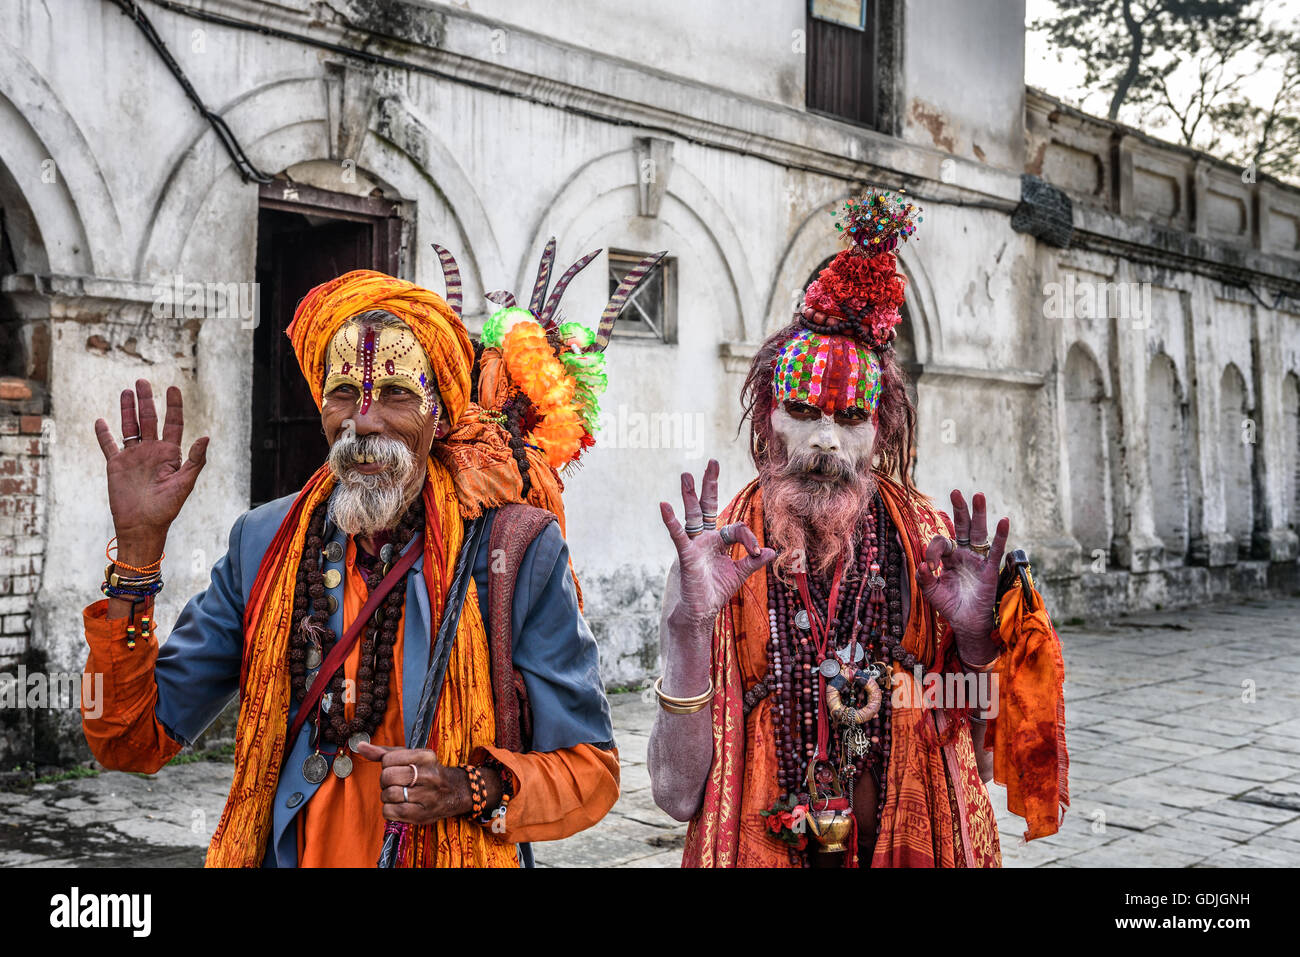 Wandering  Shaiva sadhus (holy men) with traditional body painting in ancient Pashupatinath Temple - Stock Image